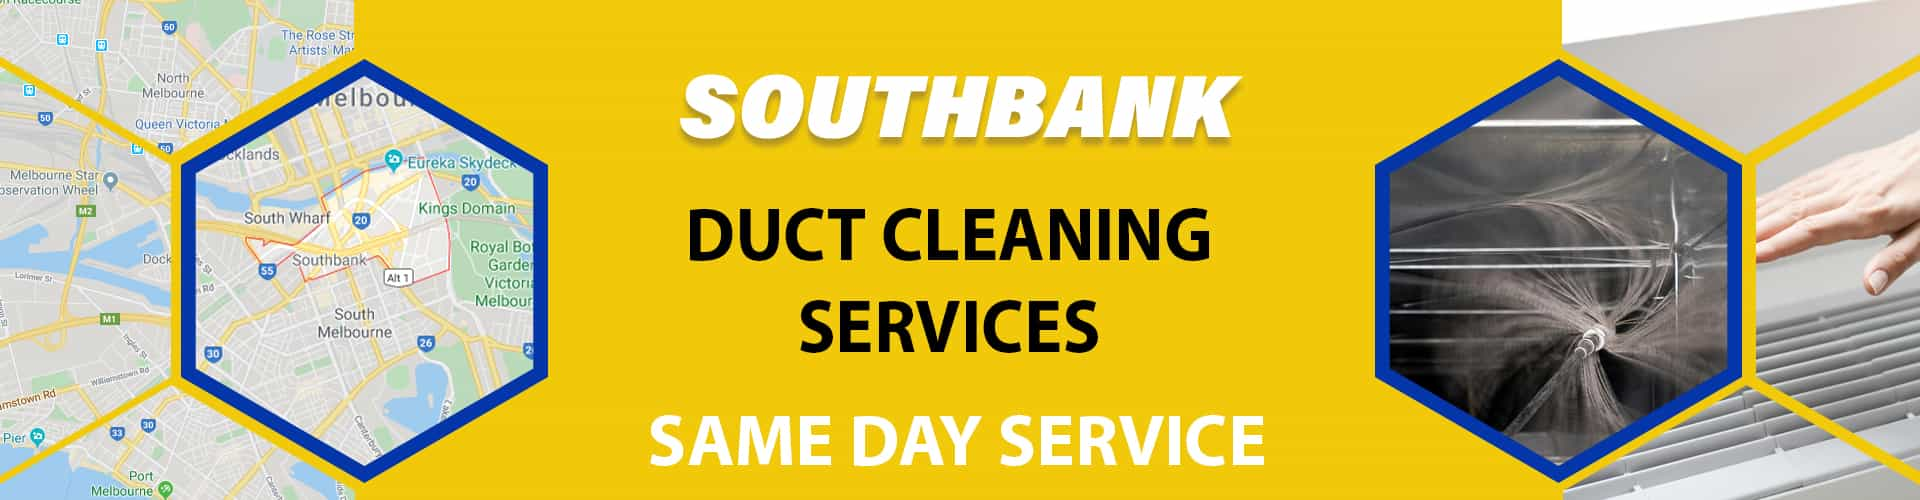 Duct Cleaning Southbank